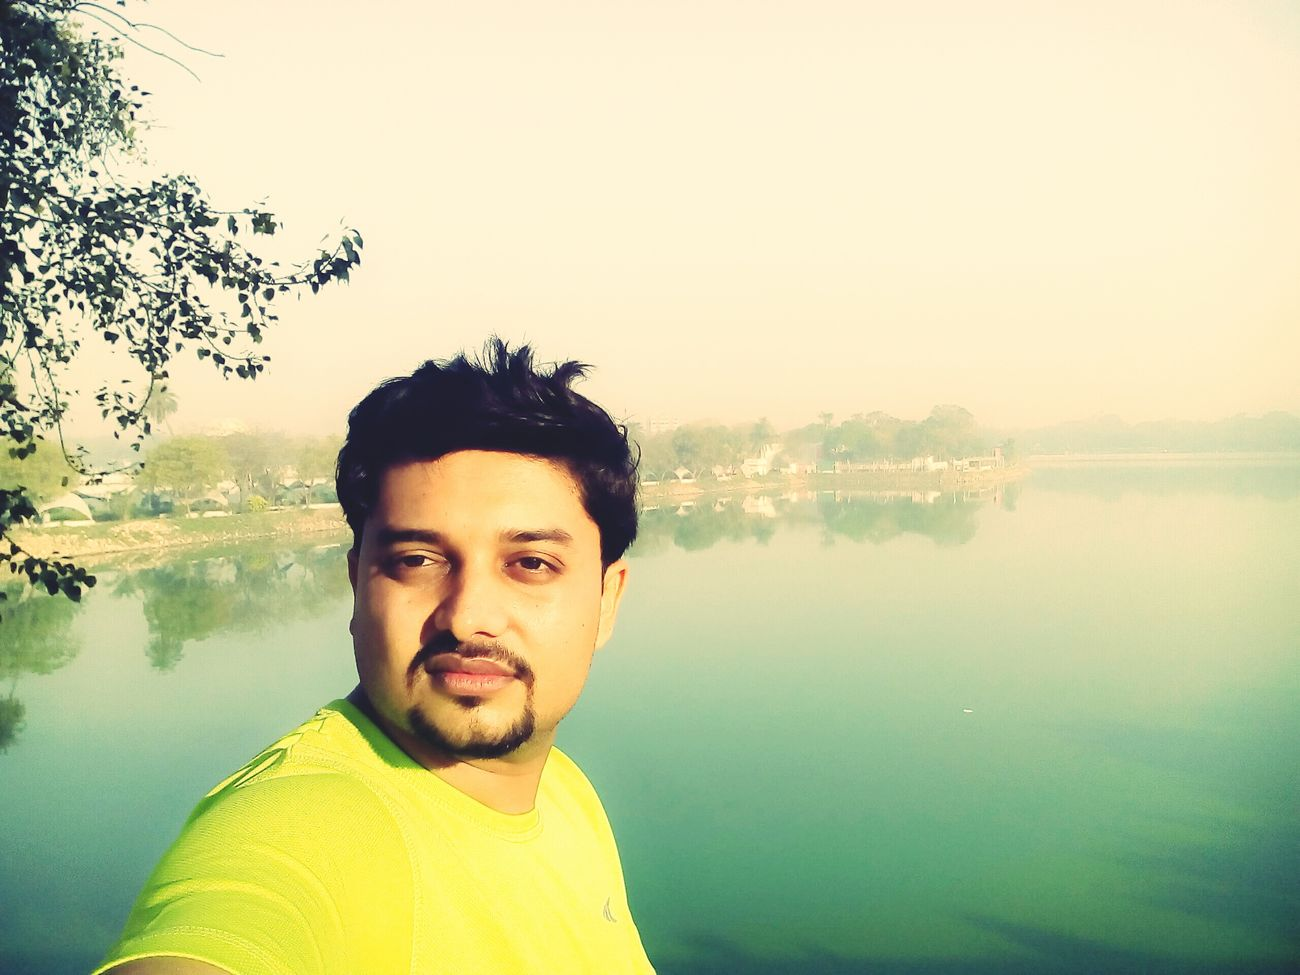 Sunday Morning.. selfie wid satisfaction of morning walk... hope this happens daily...